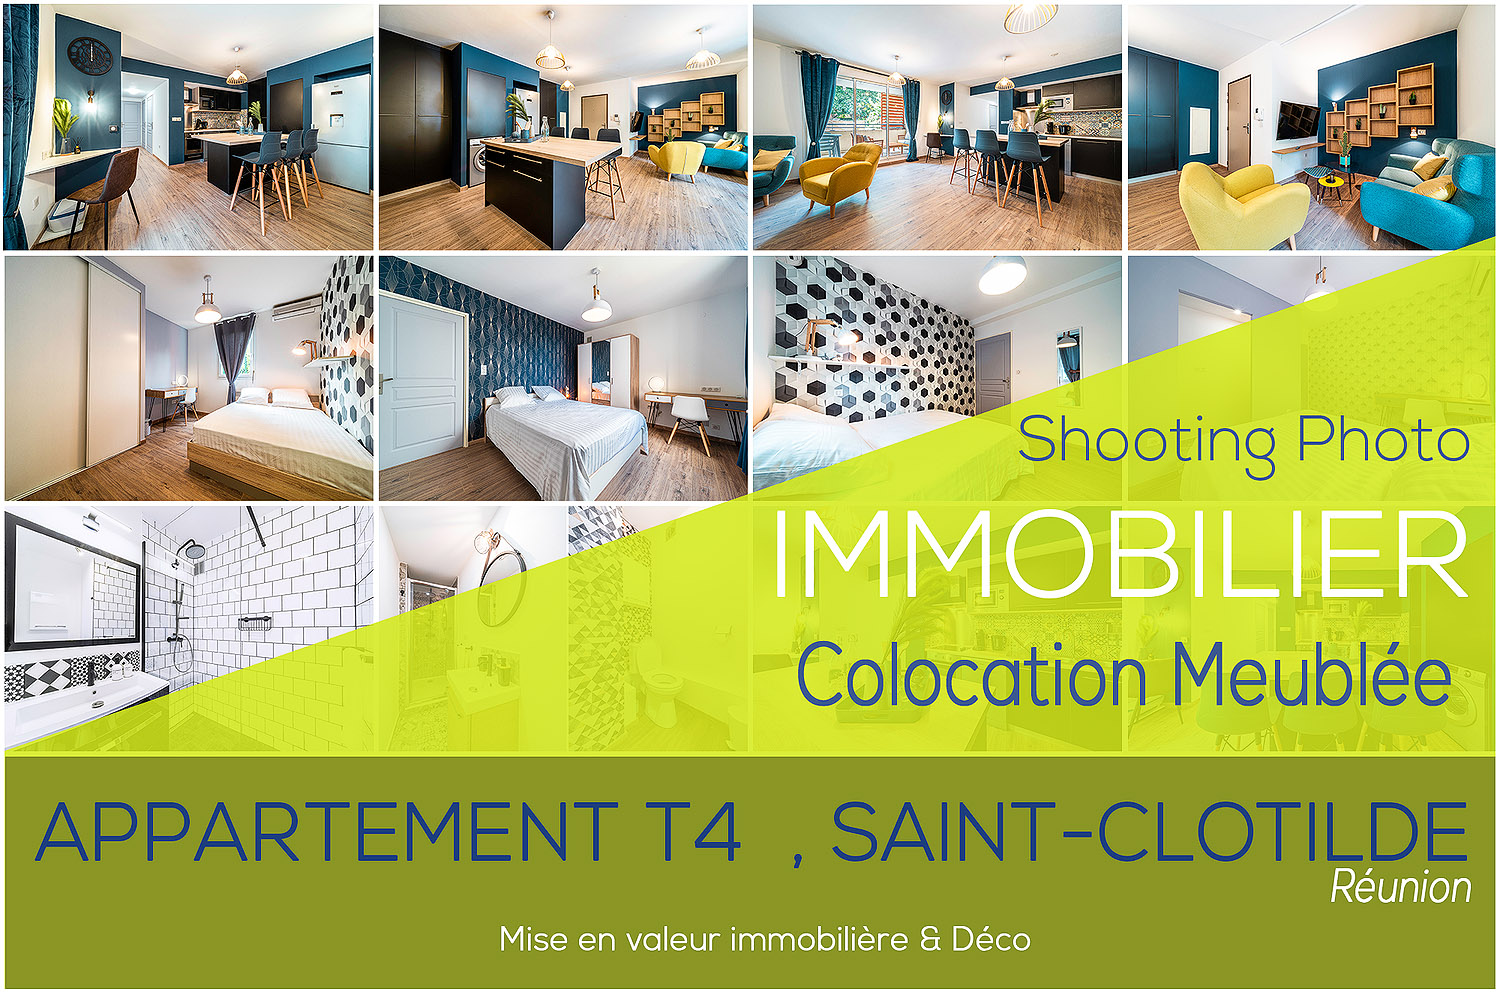 Shooting Photographe Immobilier Reunion Colocation Reunion T4